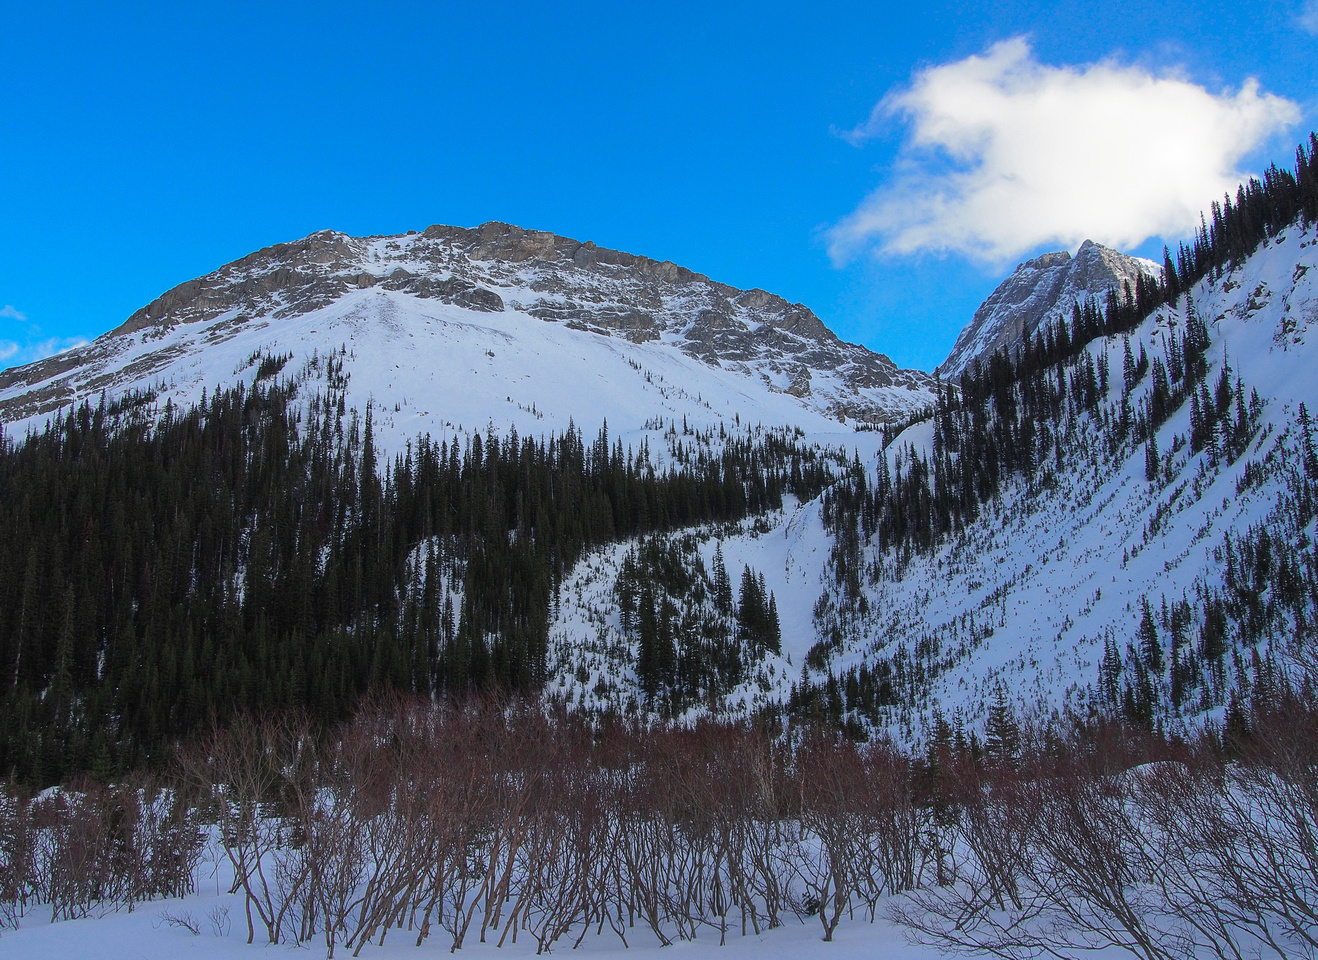 Looking up at Pig's Back and the gully we descended a week ago!